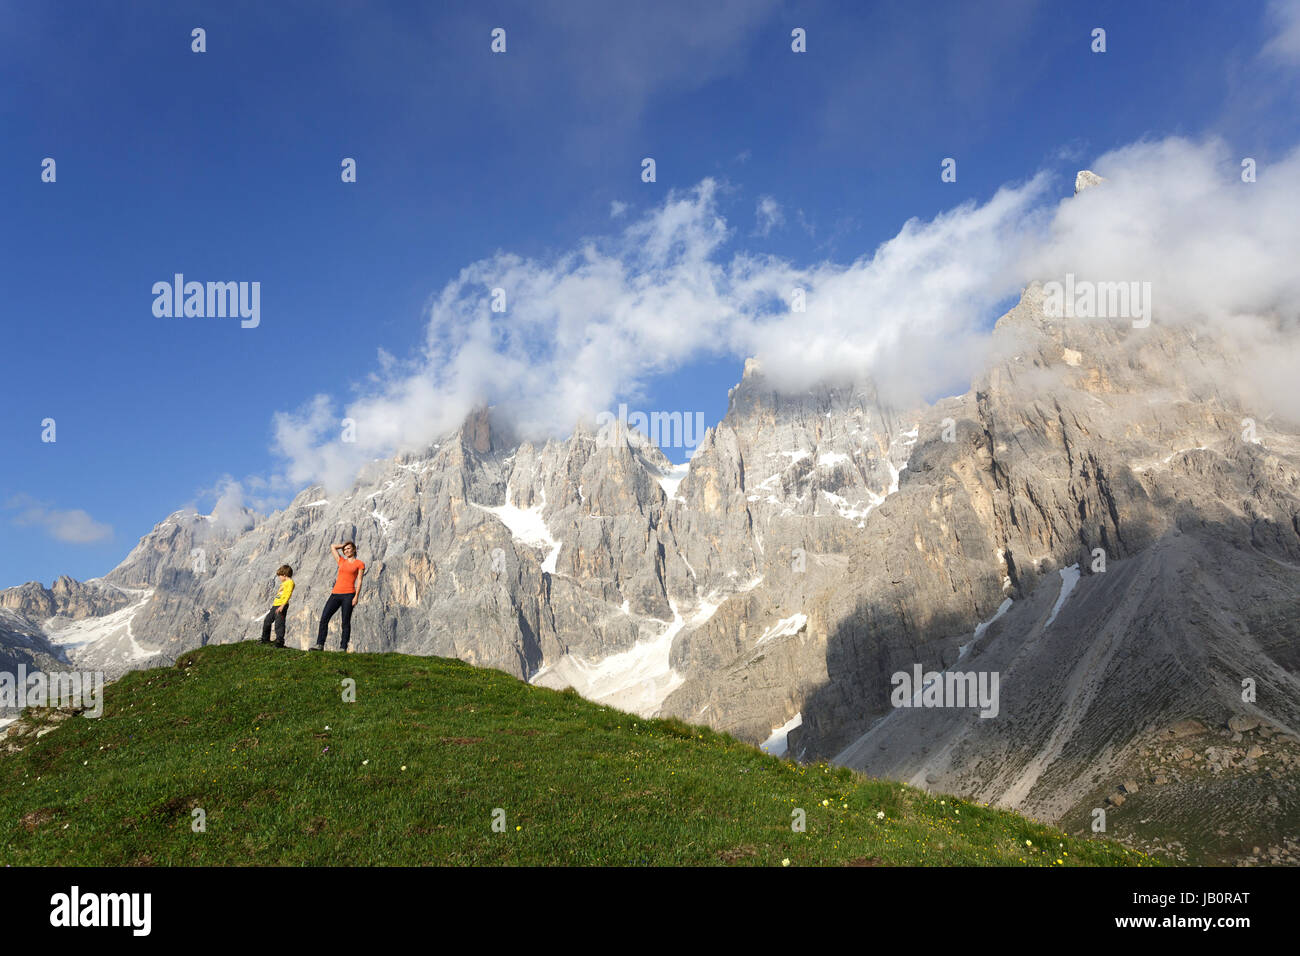 Mother and son standing on a hill under the mountains near pasoo Rolle, Dolomiti, Italy. - Stock Image